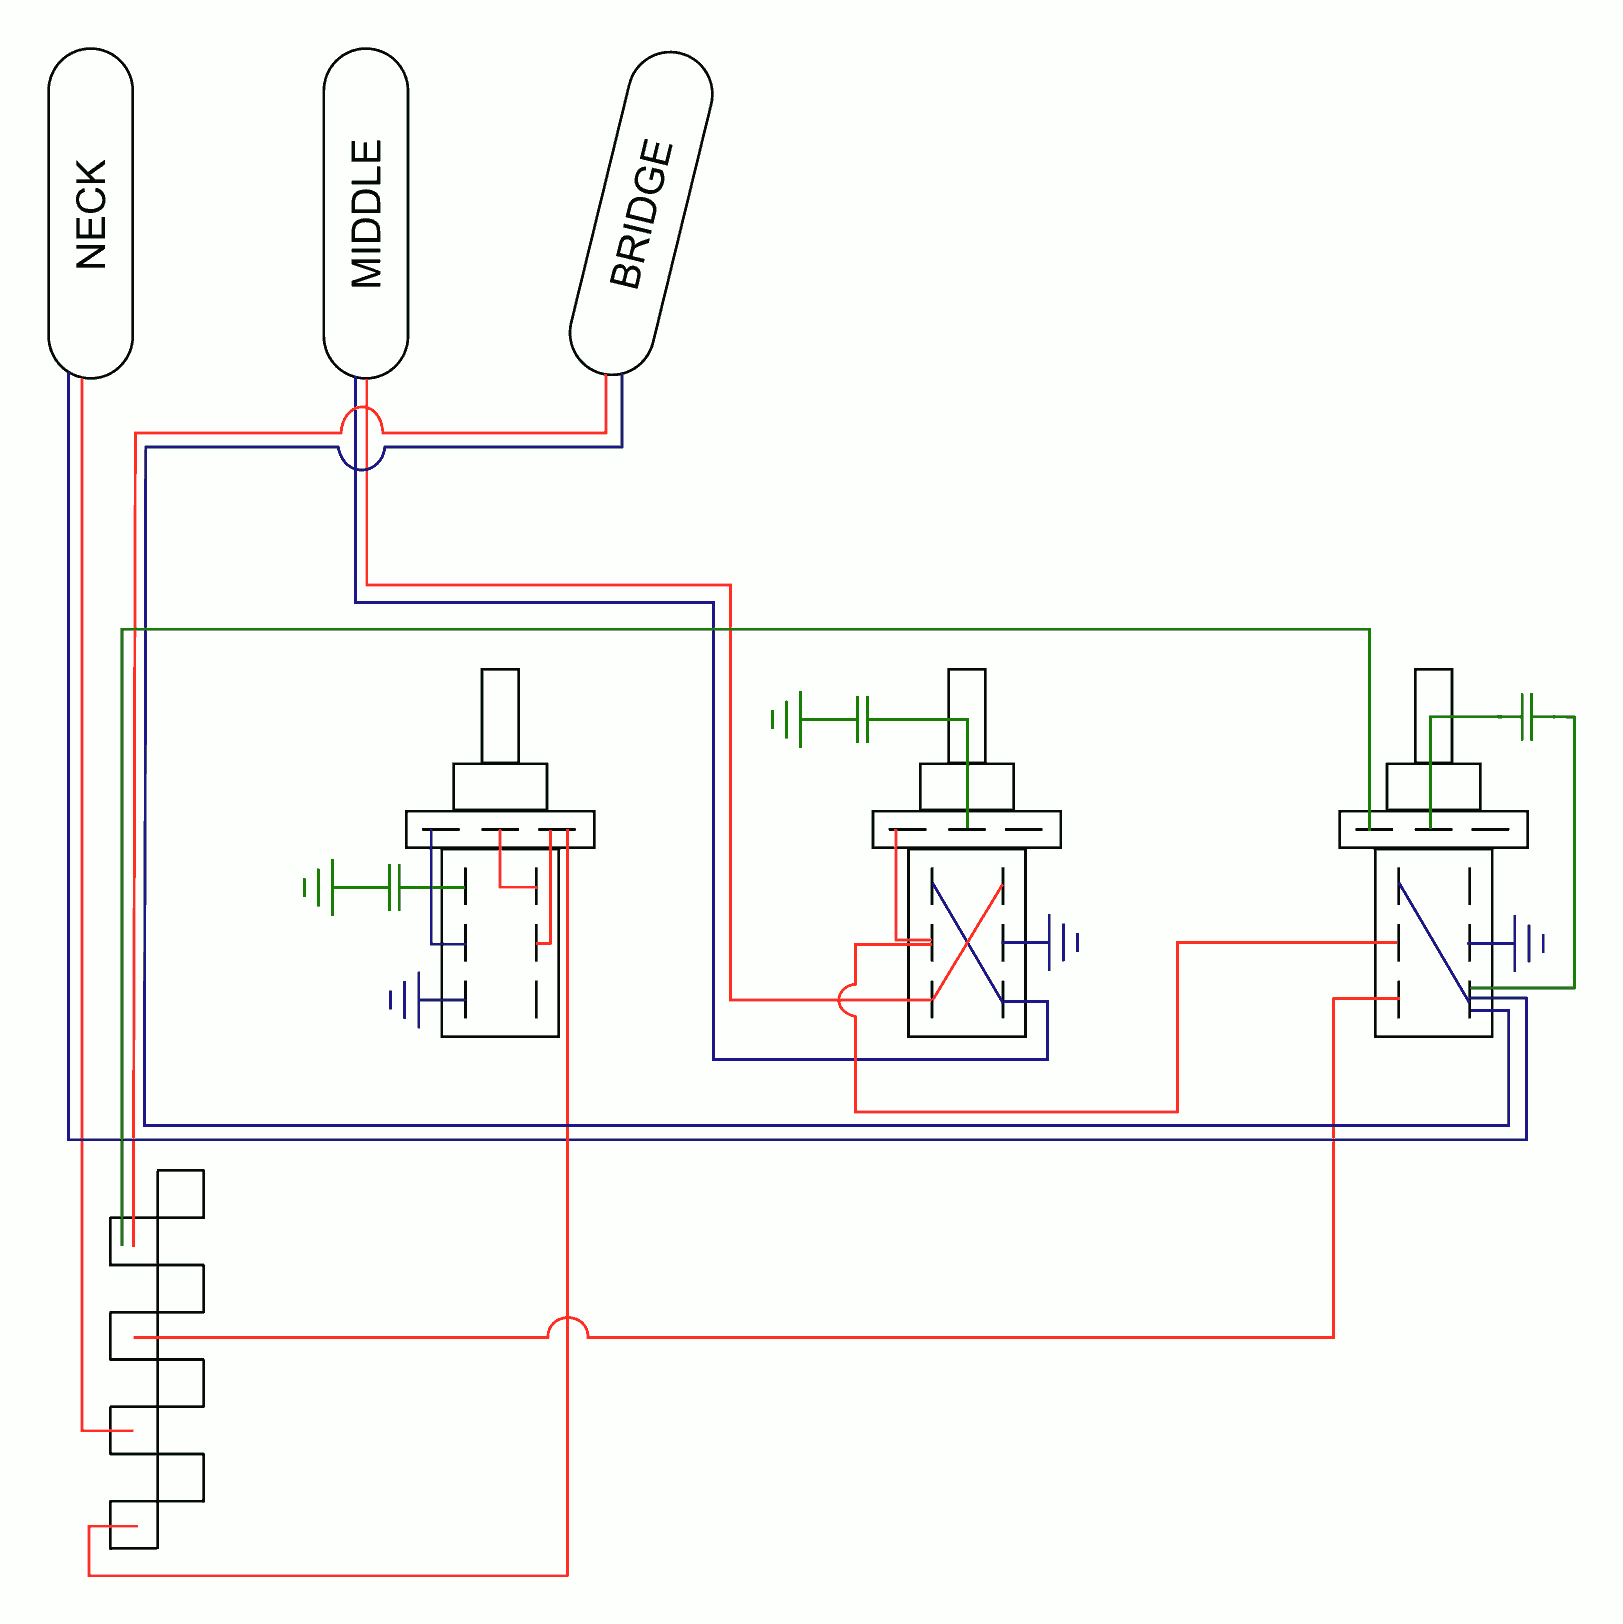 Series Parallel Wiring Diagram : Strat series parallel wiring diagram